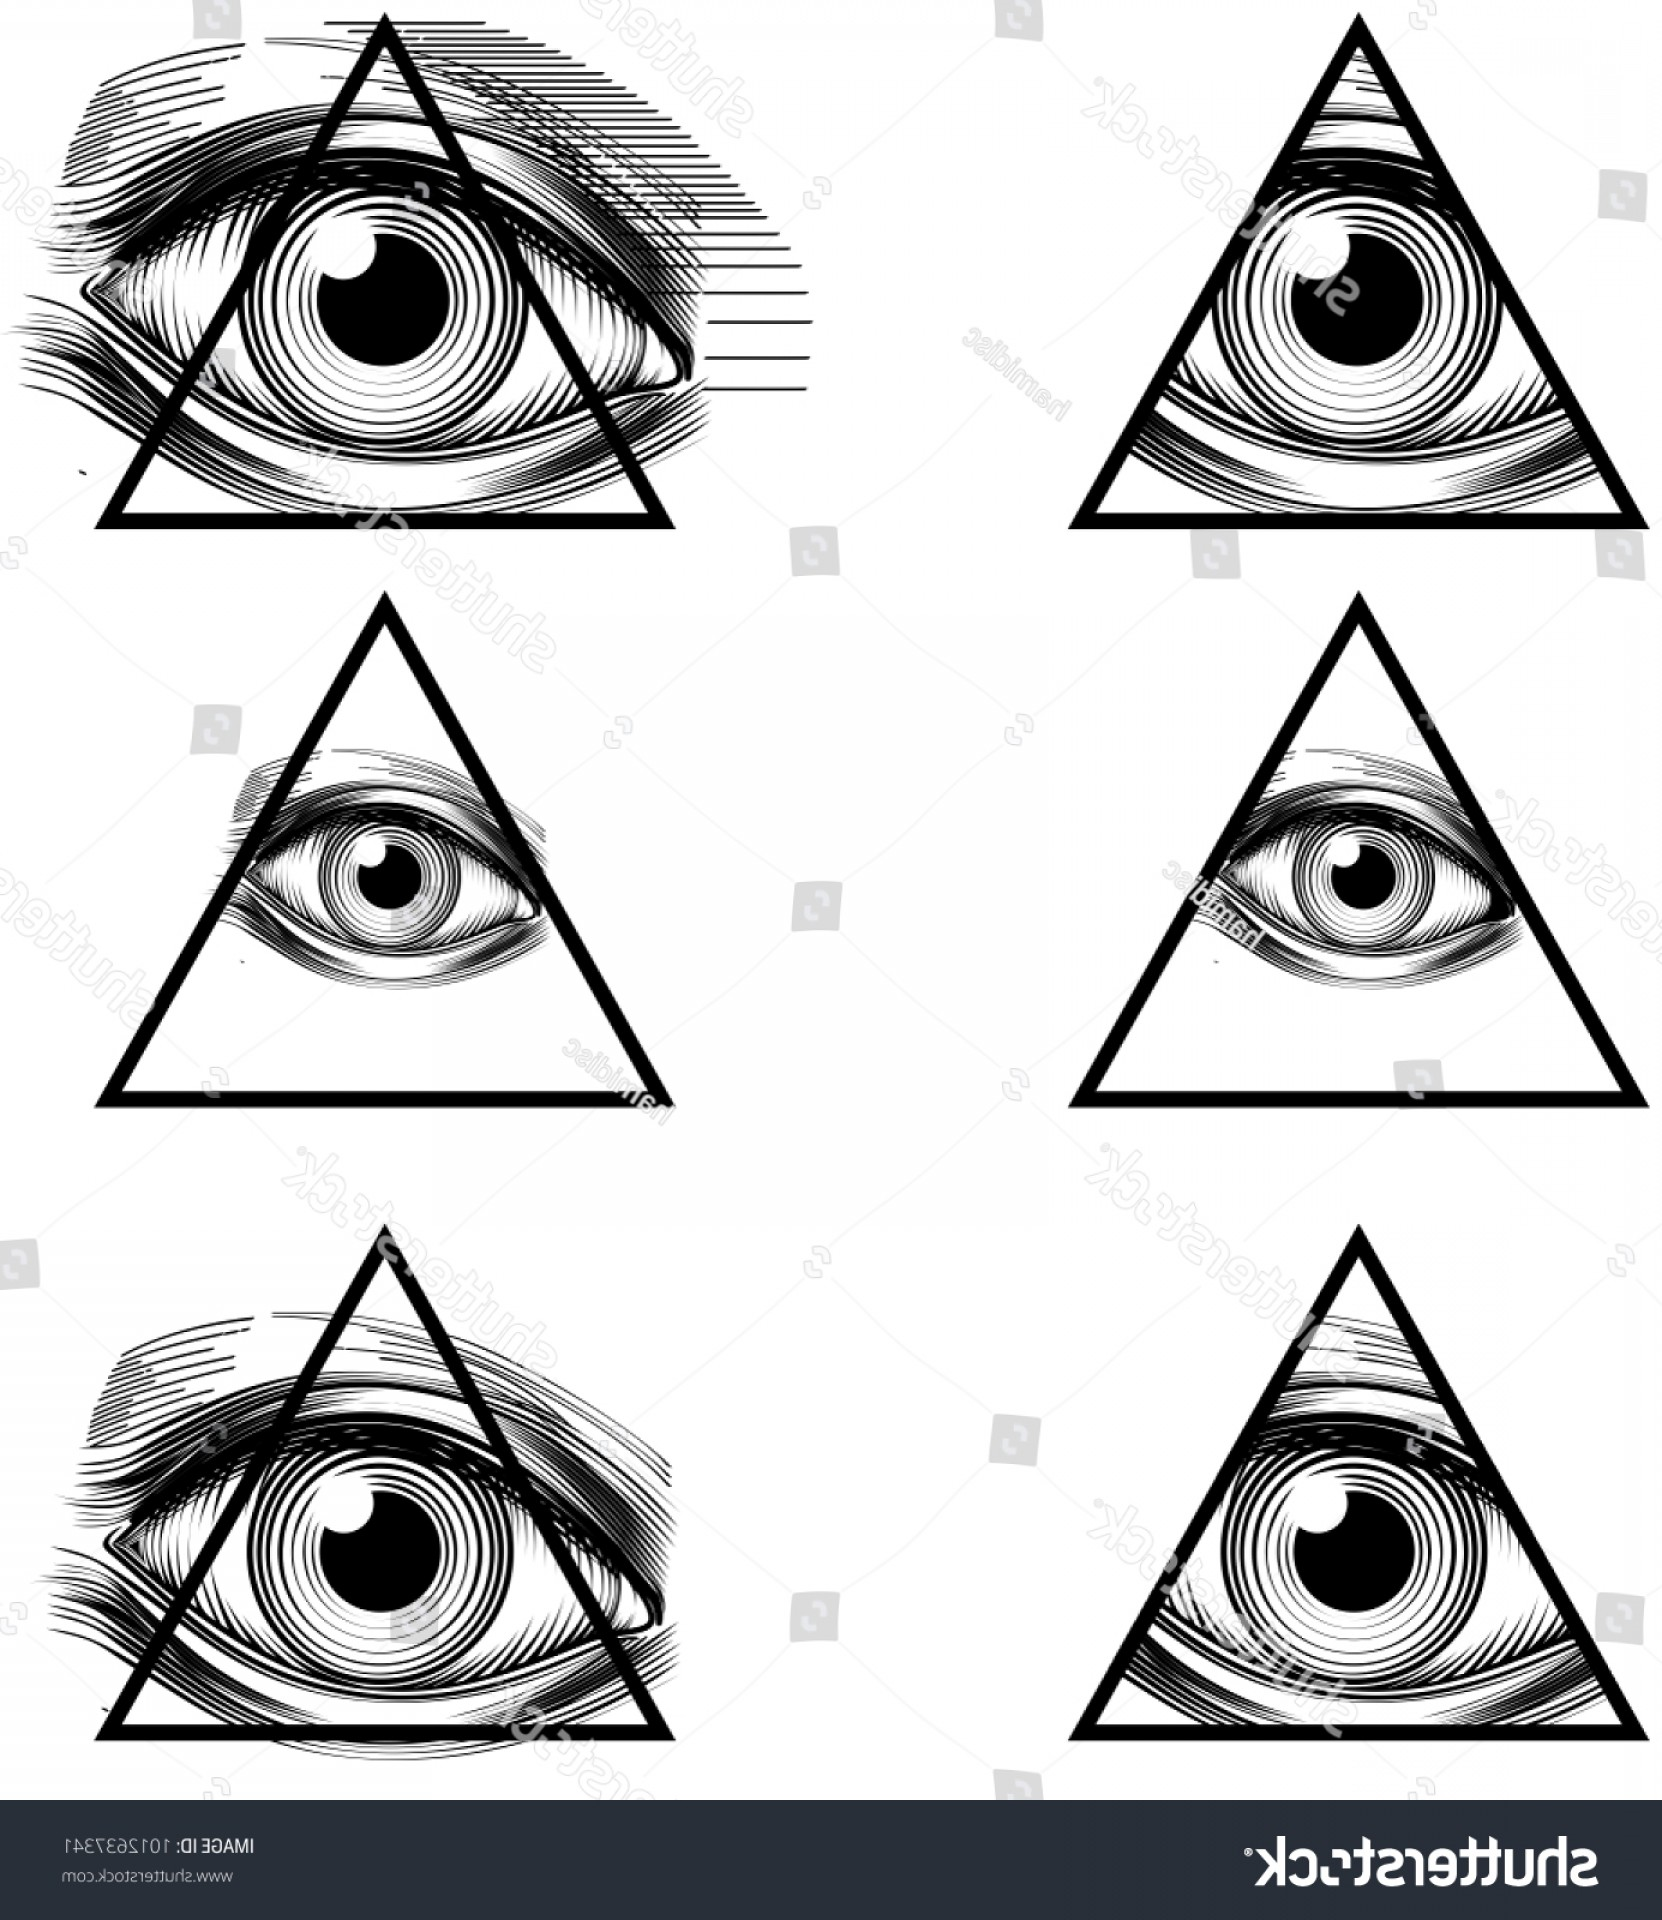 Conspiracy theory clipart picture freeuse stock Illuminati Conspiracy Theory Illustration All Seeing | SOIDERGI picture freeuse stock